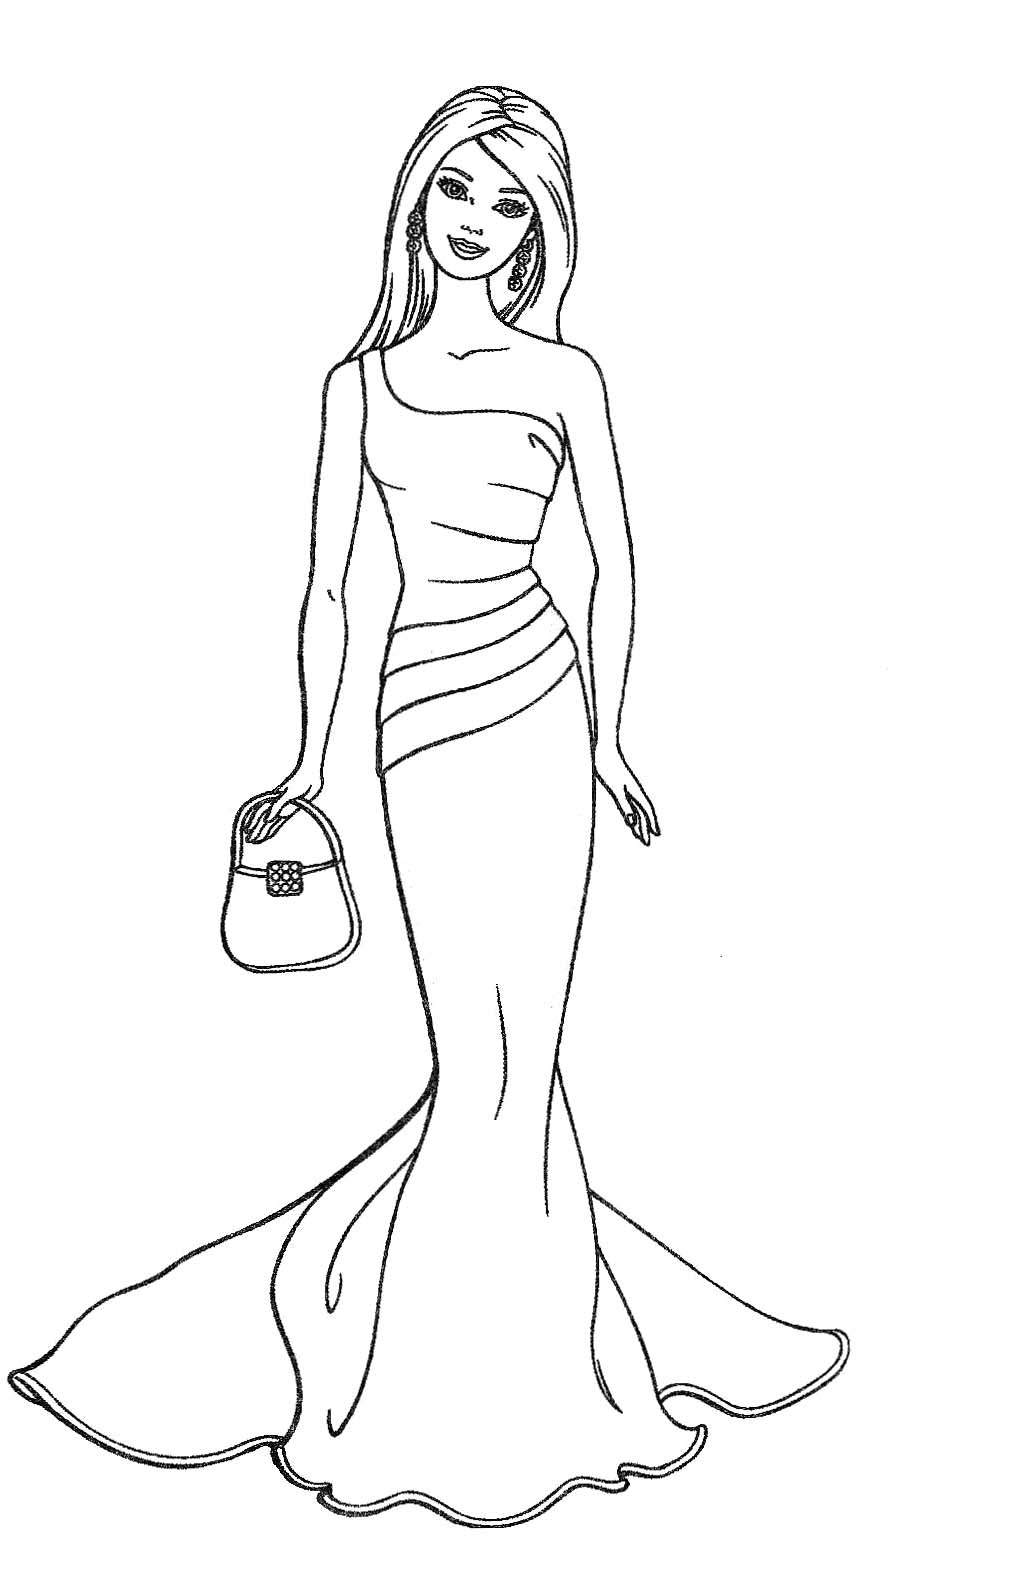 Sketch artist drawing at getdrawings free for personal use